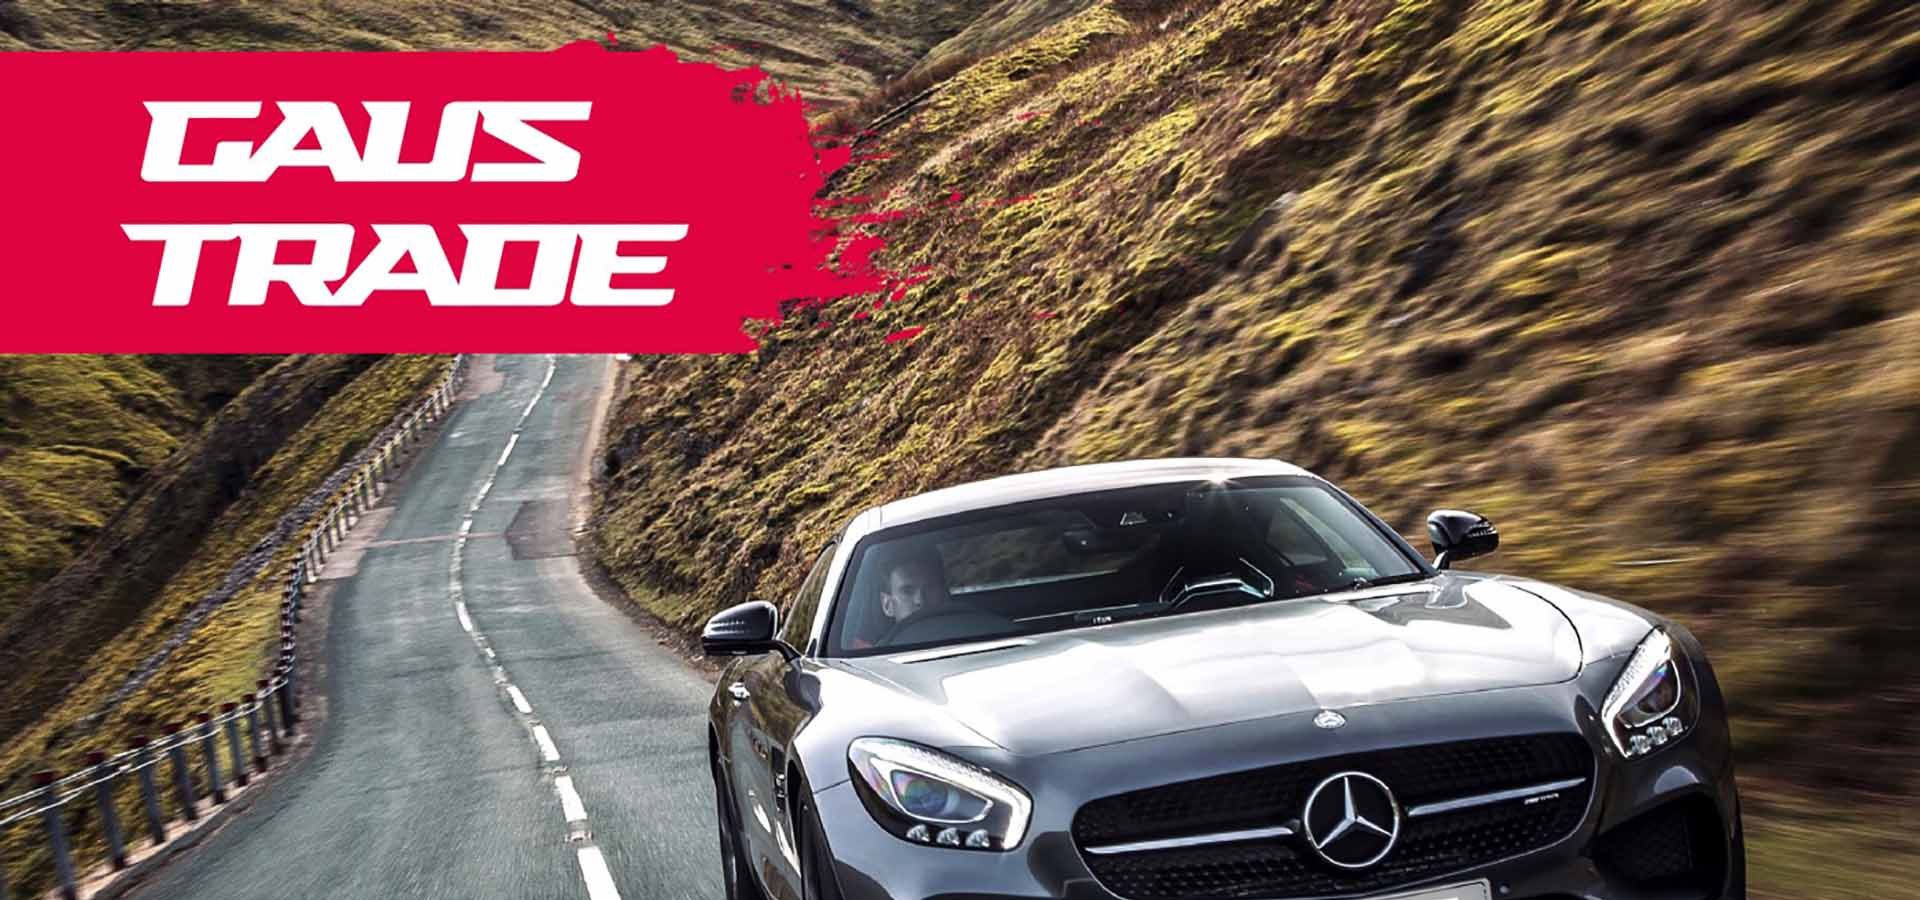 Gaus trade launches sales of mercedes benz for for Mercedes benz trade in